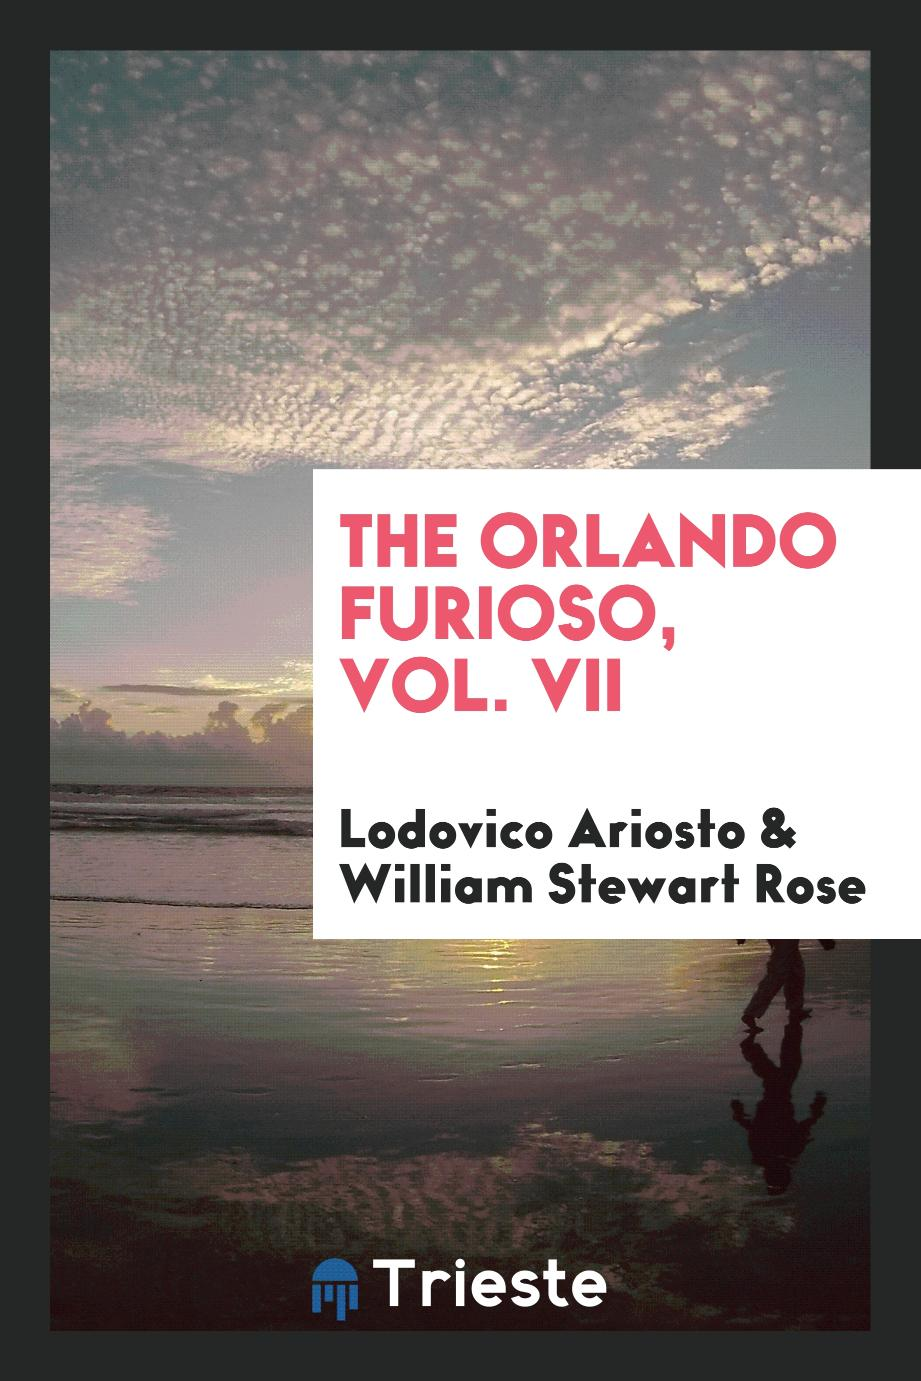 Lodovico Ariosto, William Stewart Rose - The Orlando Furioso, Vol. VII